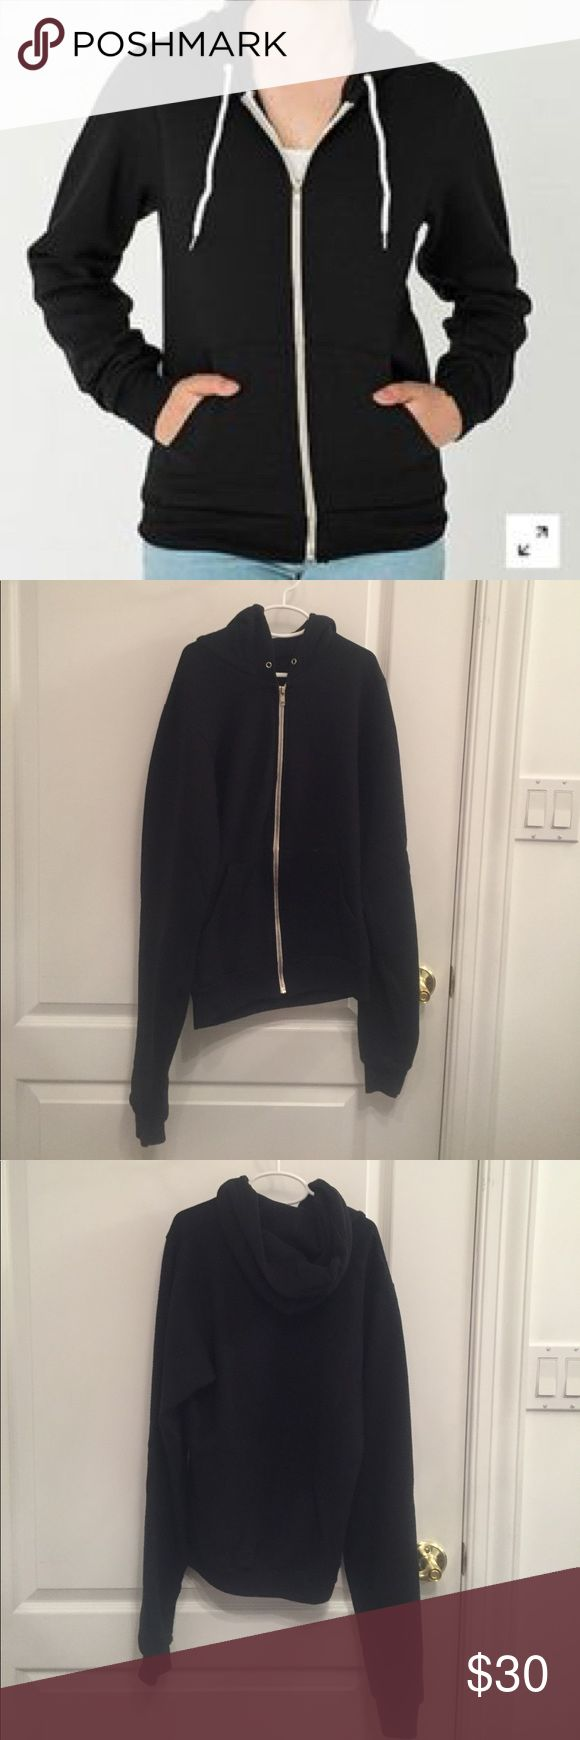 American Apparel Black Zip Up Hoodie American Apparel black zip up hoodie. Missing lace from hood and minor pilling on arms and inside, but still in great condition.  Feel free to comment with any questions or to make me an offer! American Apparel Tops Sweatshirts & Hoodies